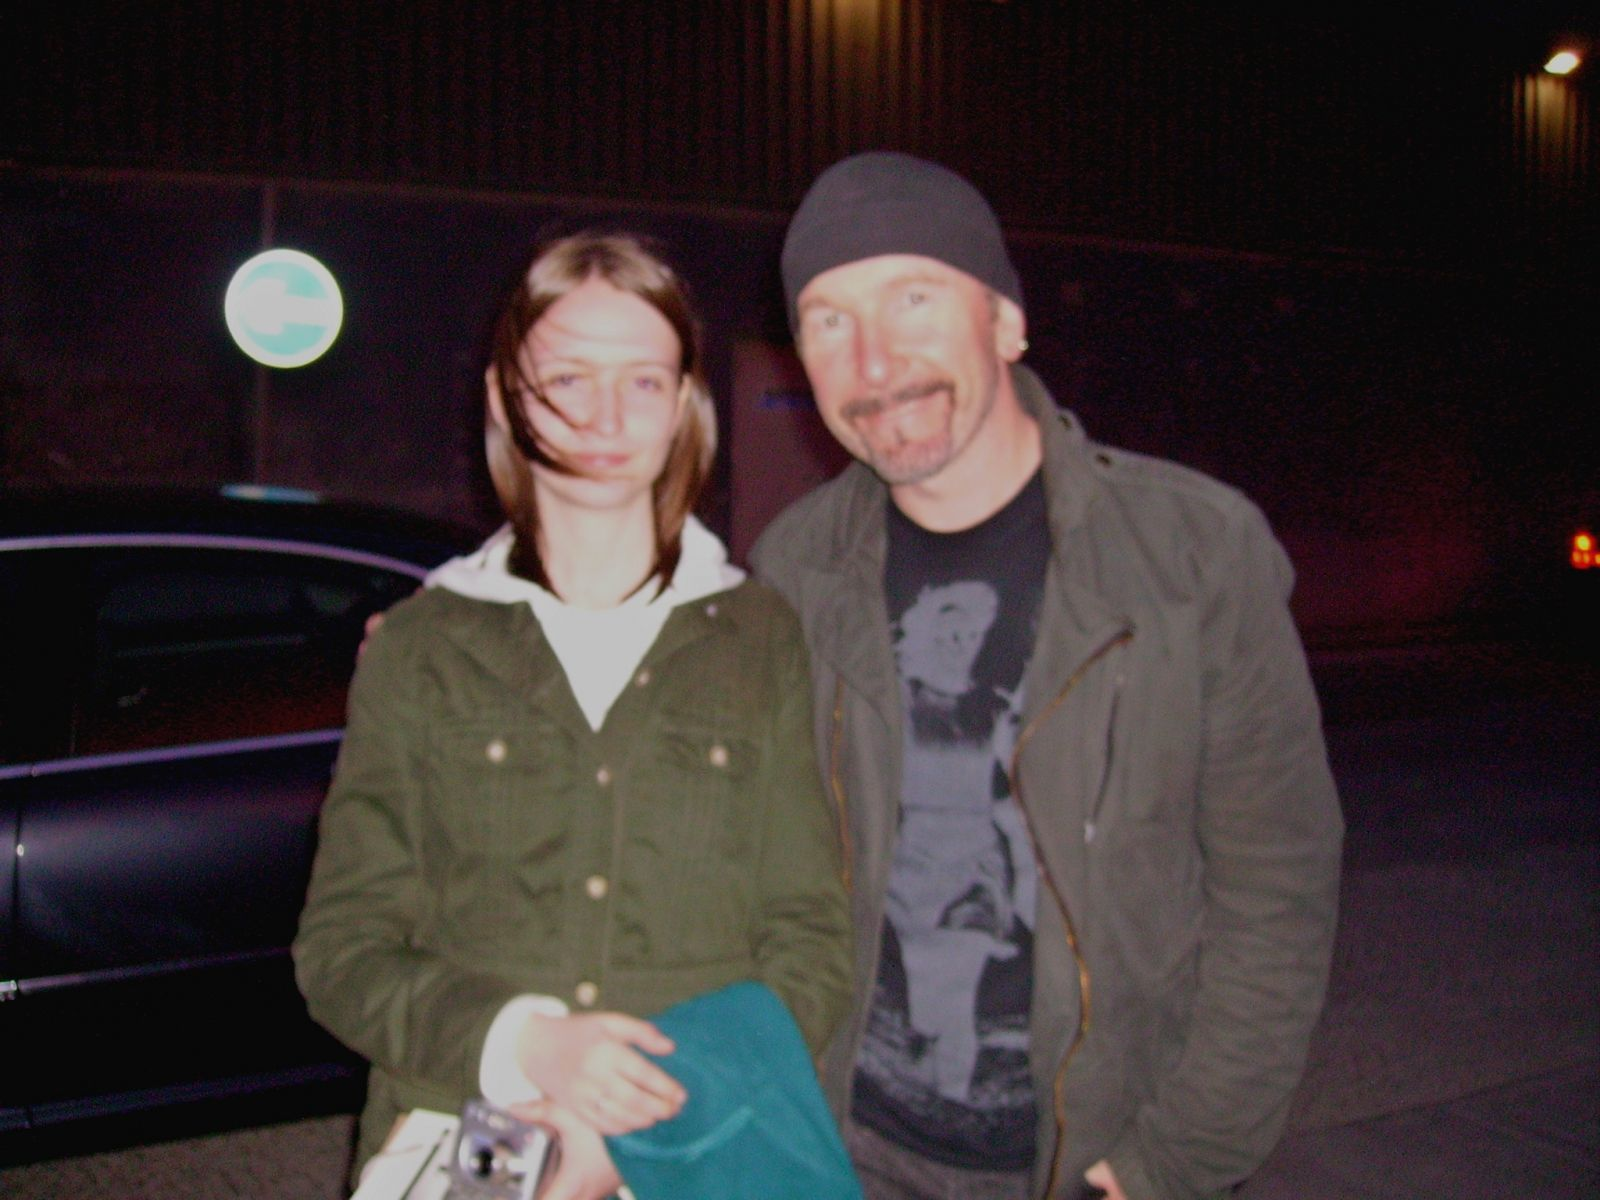 Me and The Edge